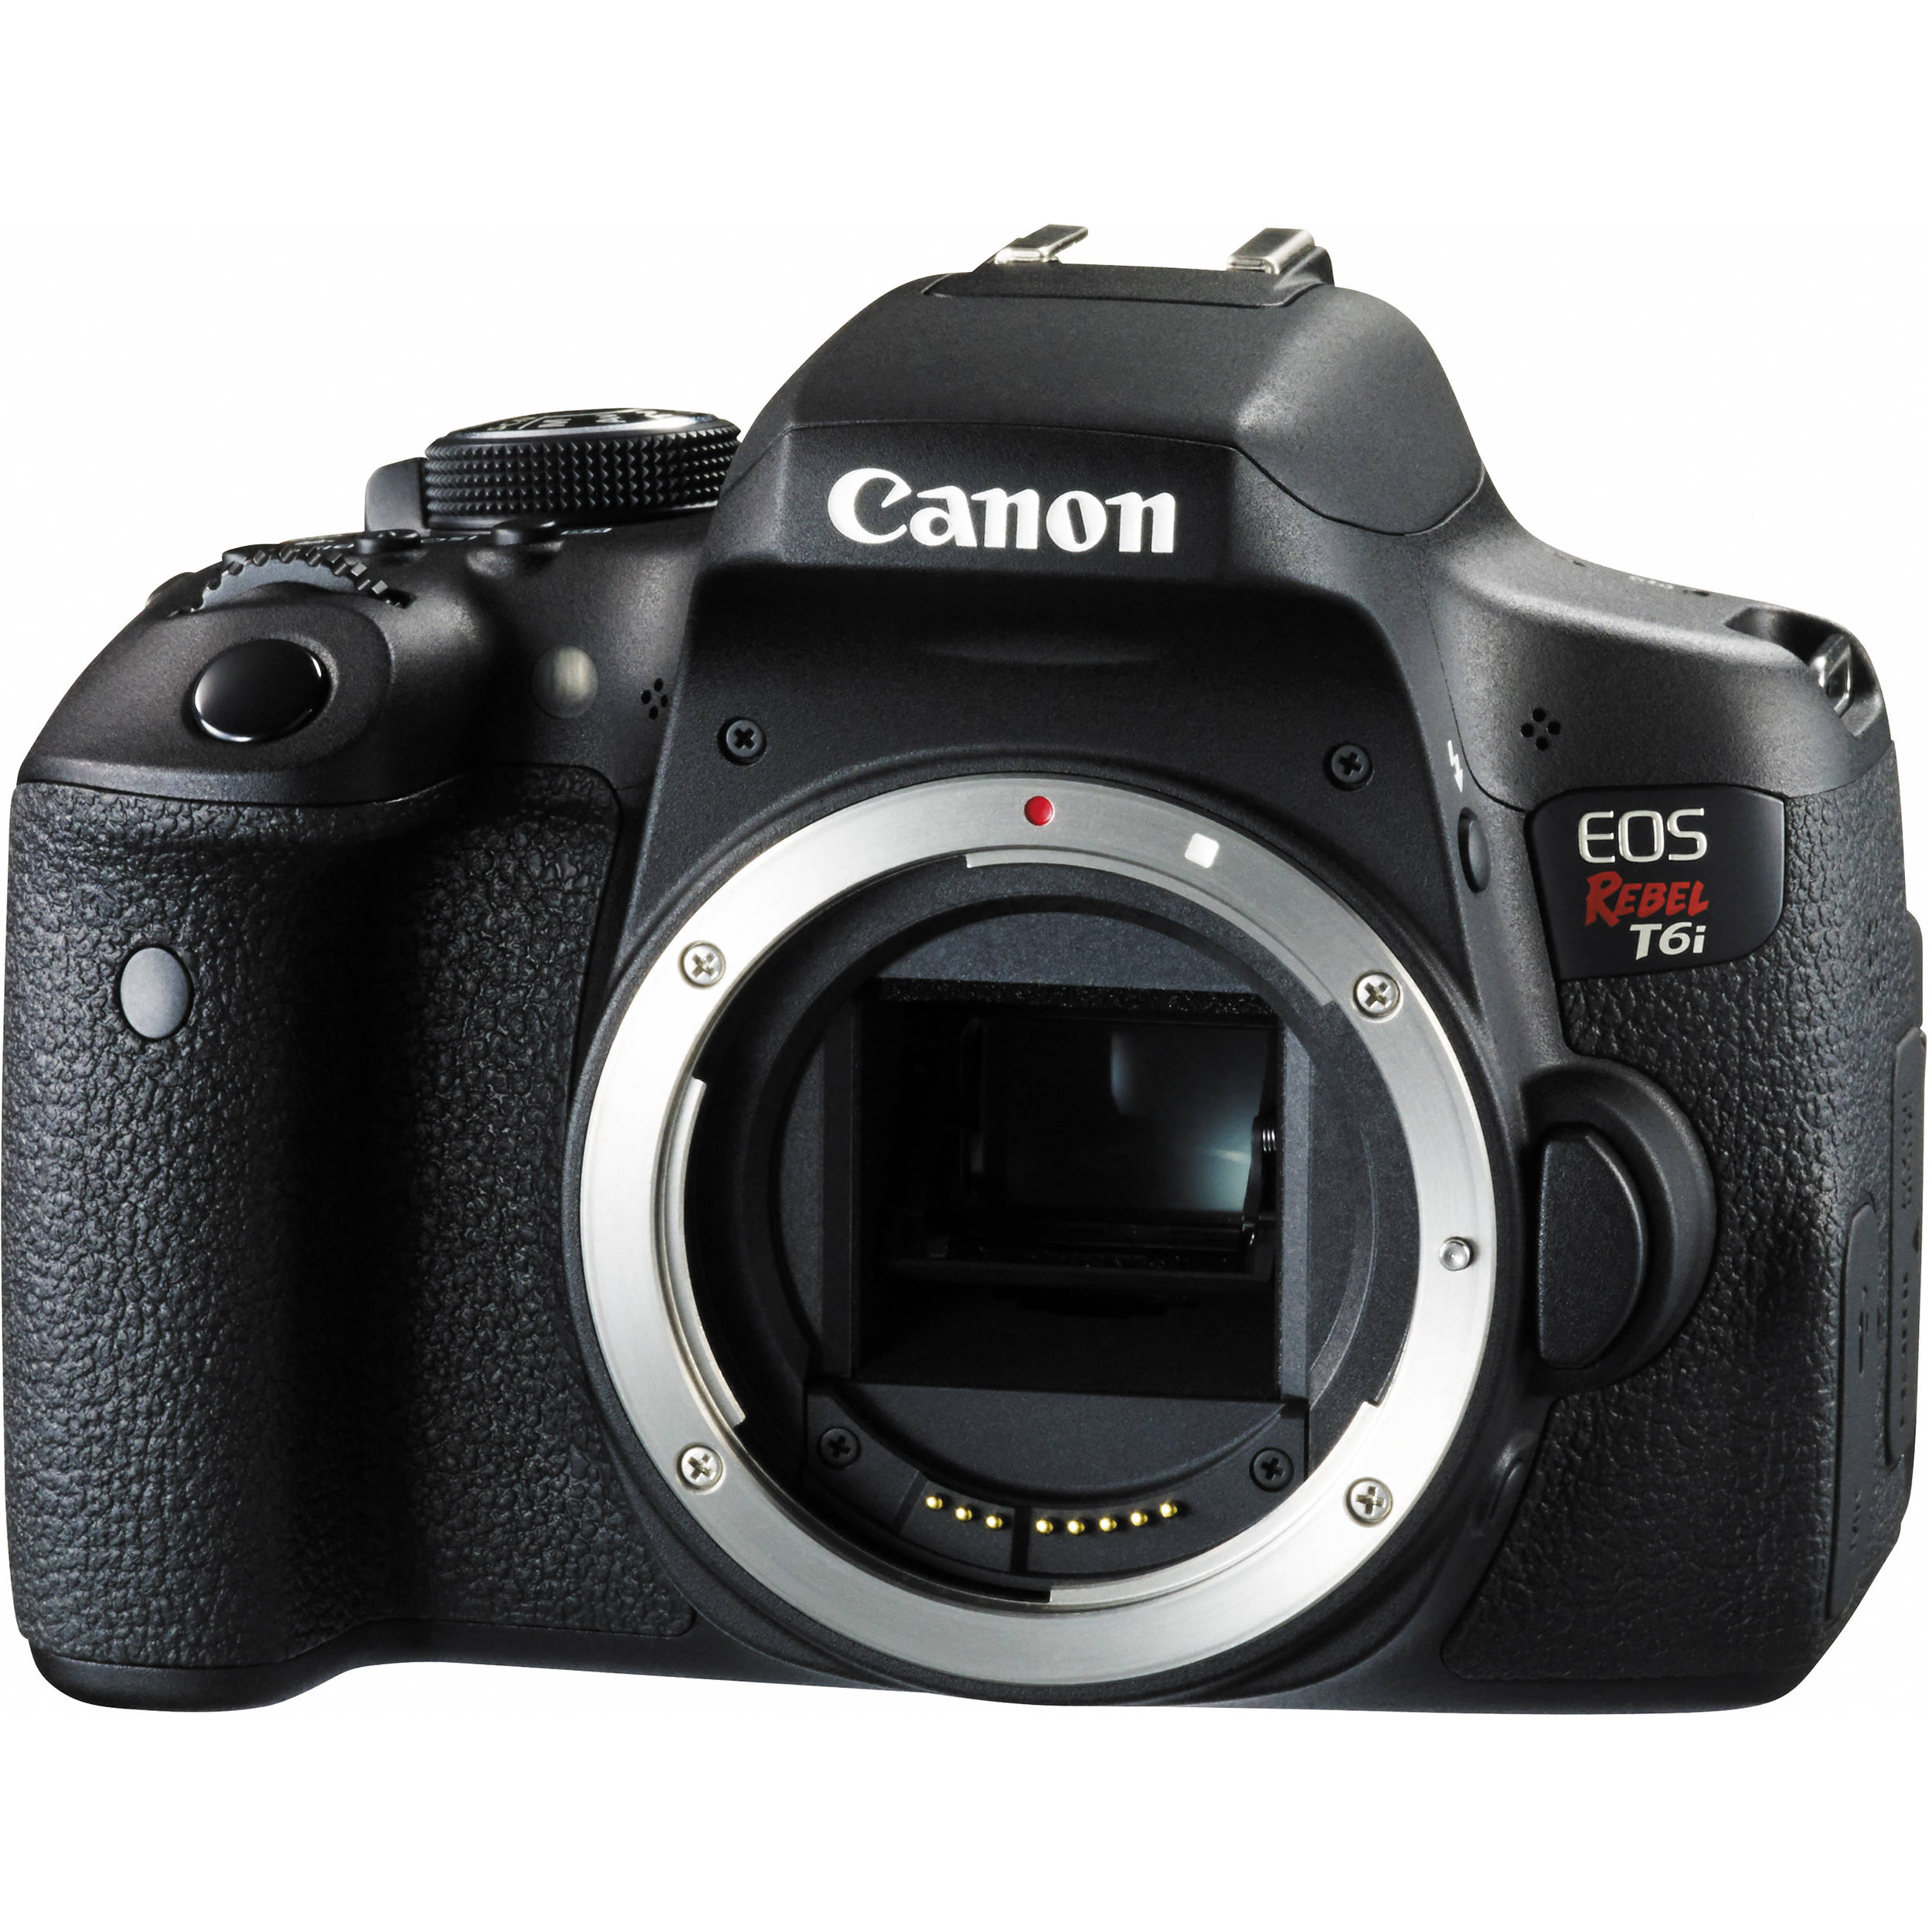 Camera Which Is The Best Canon Dslr Camera top 7 best entry level dslr cameras a guide to begin with choice sony alpha a58